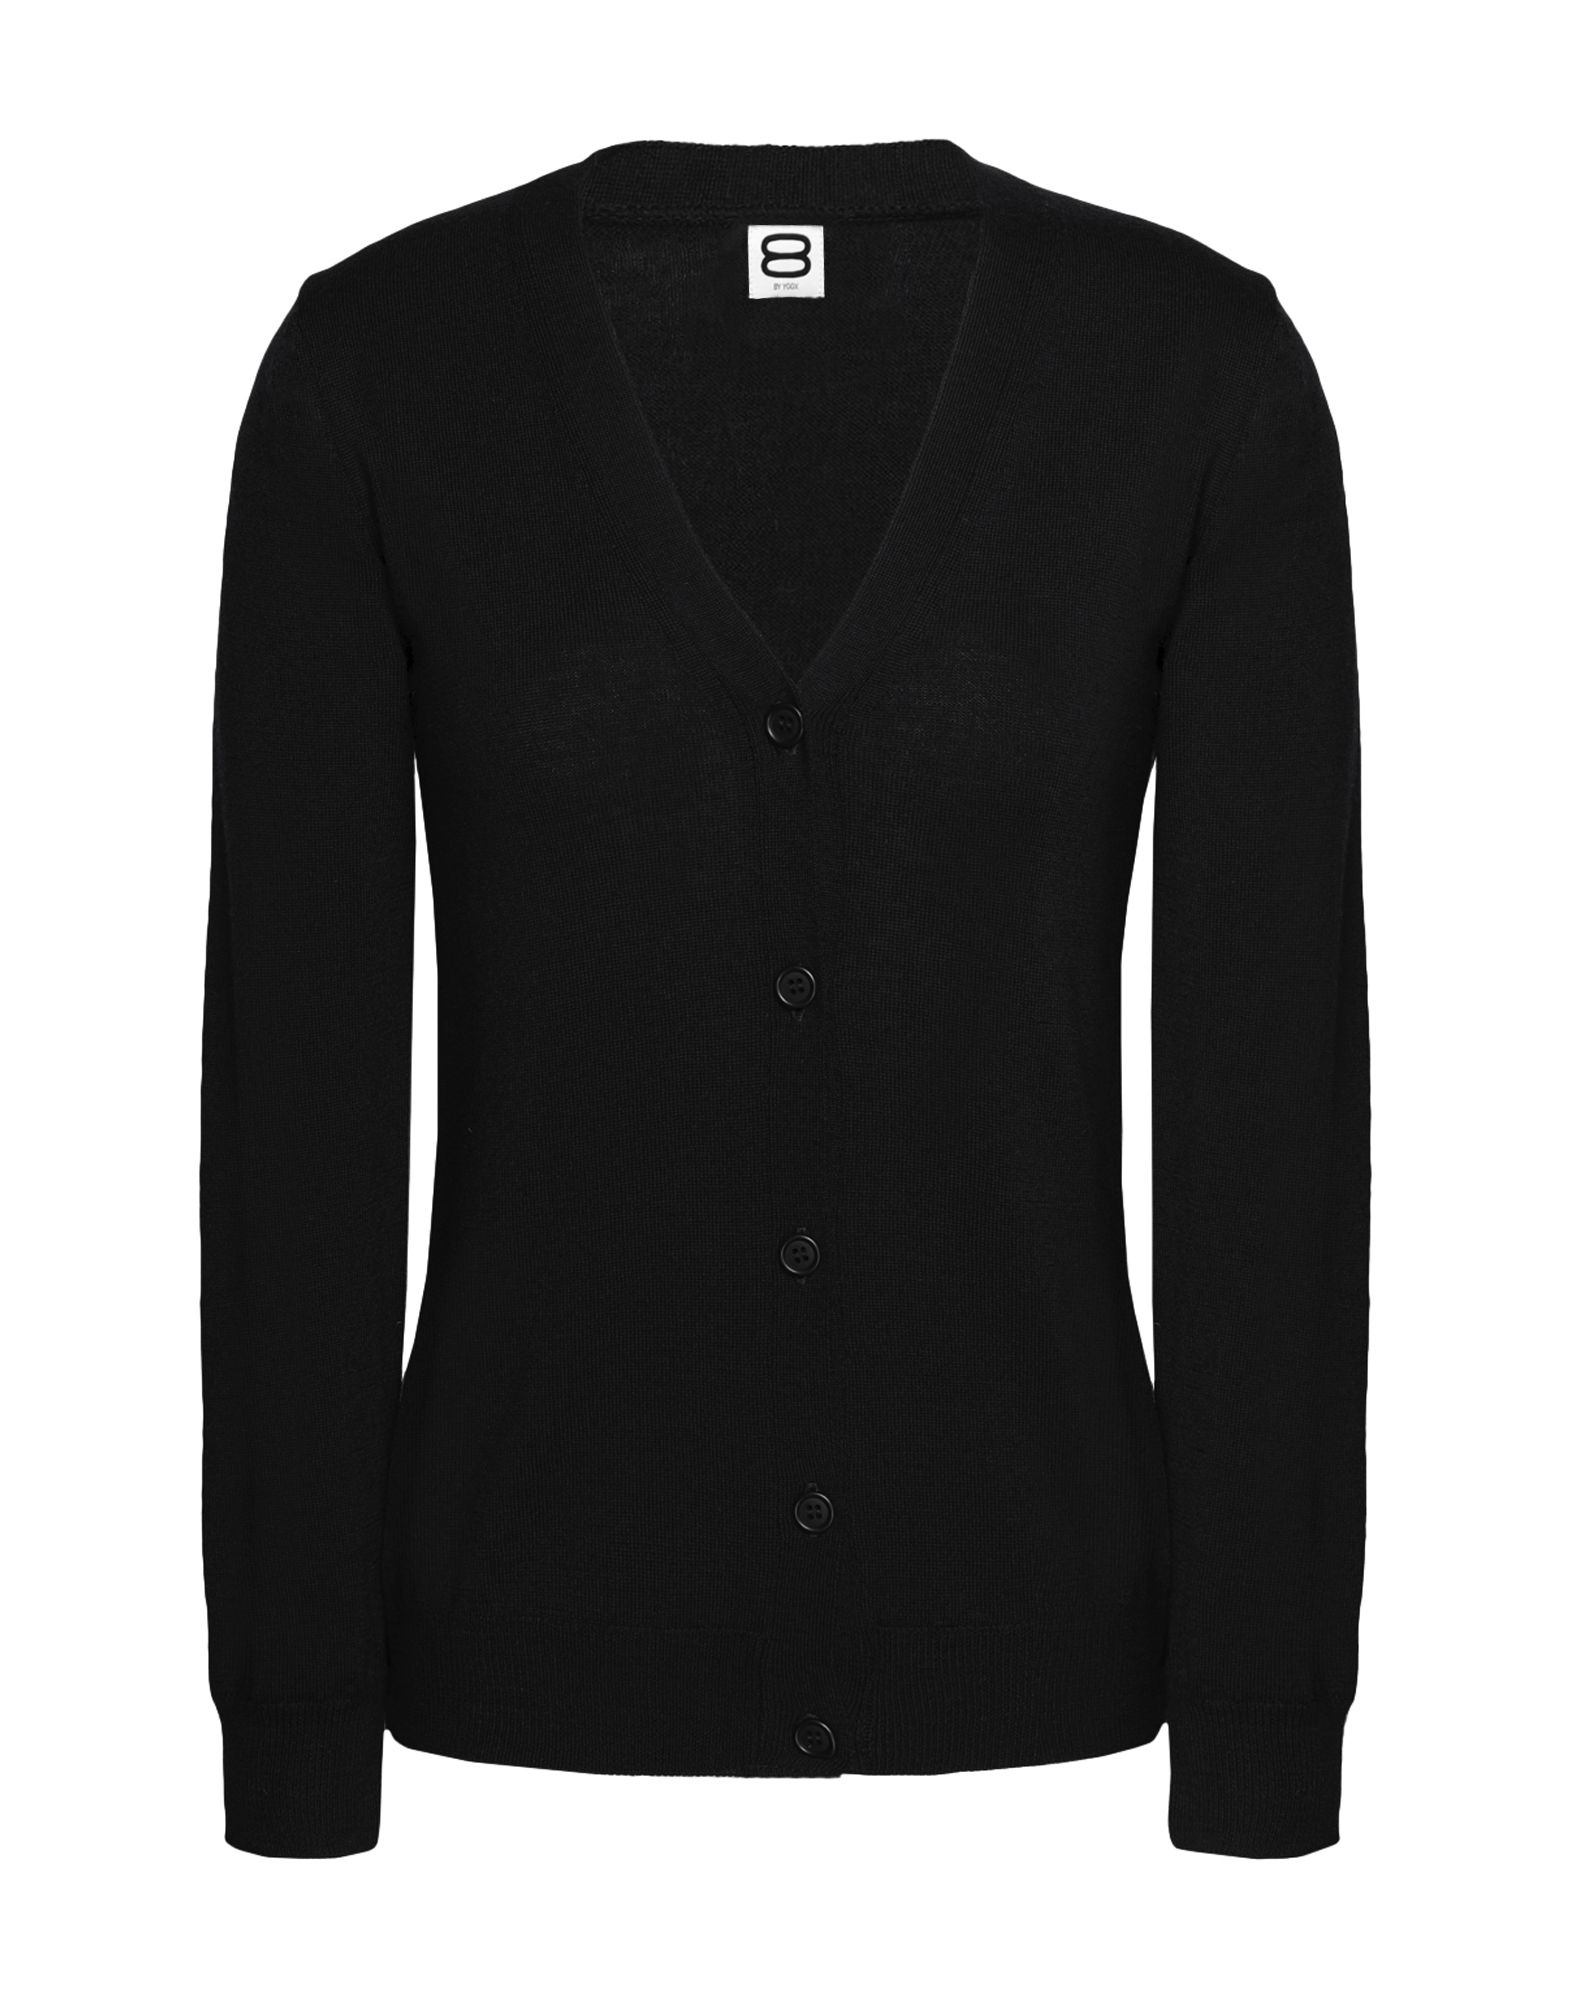 8 by YOOX Strickjacke Damen Schwarz von 8 by YOOX